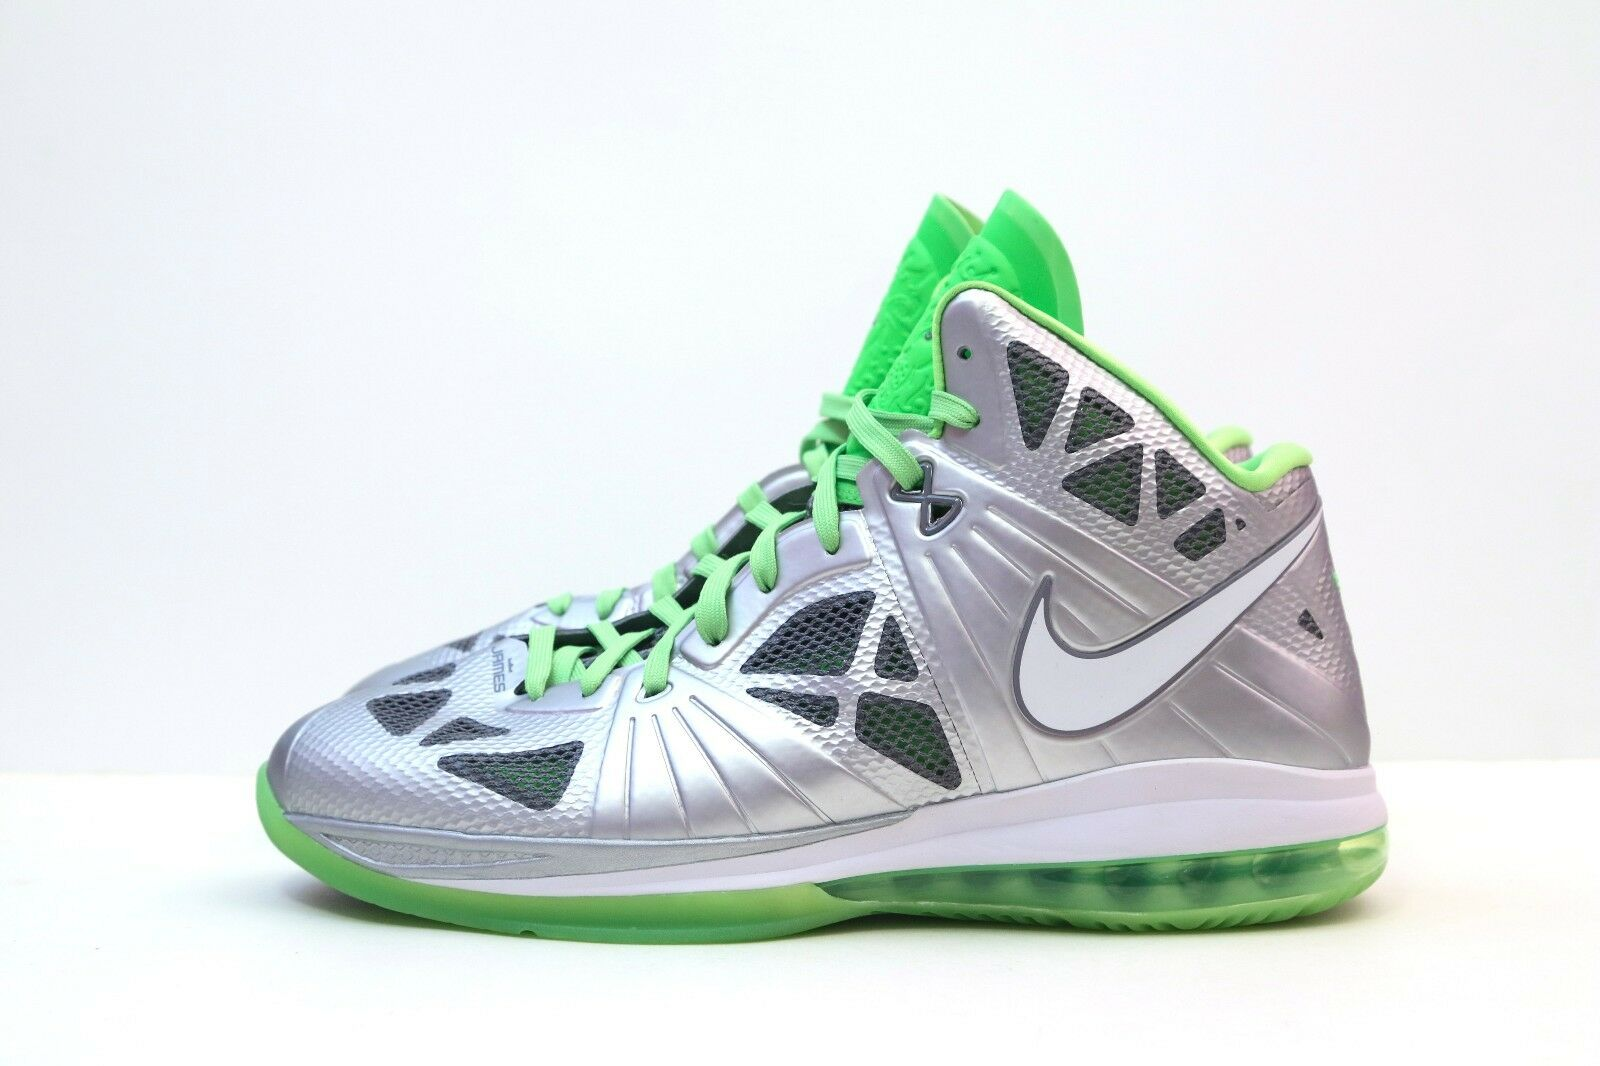 NEW - NIKE ZOOM LEBRON 8 PS - PLAYOFF PE PLAYER EDITION - DUNKMAN - 2010 - SZ 16